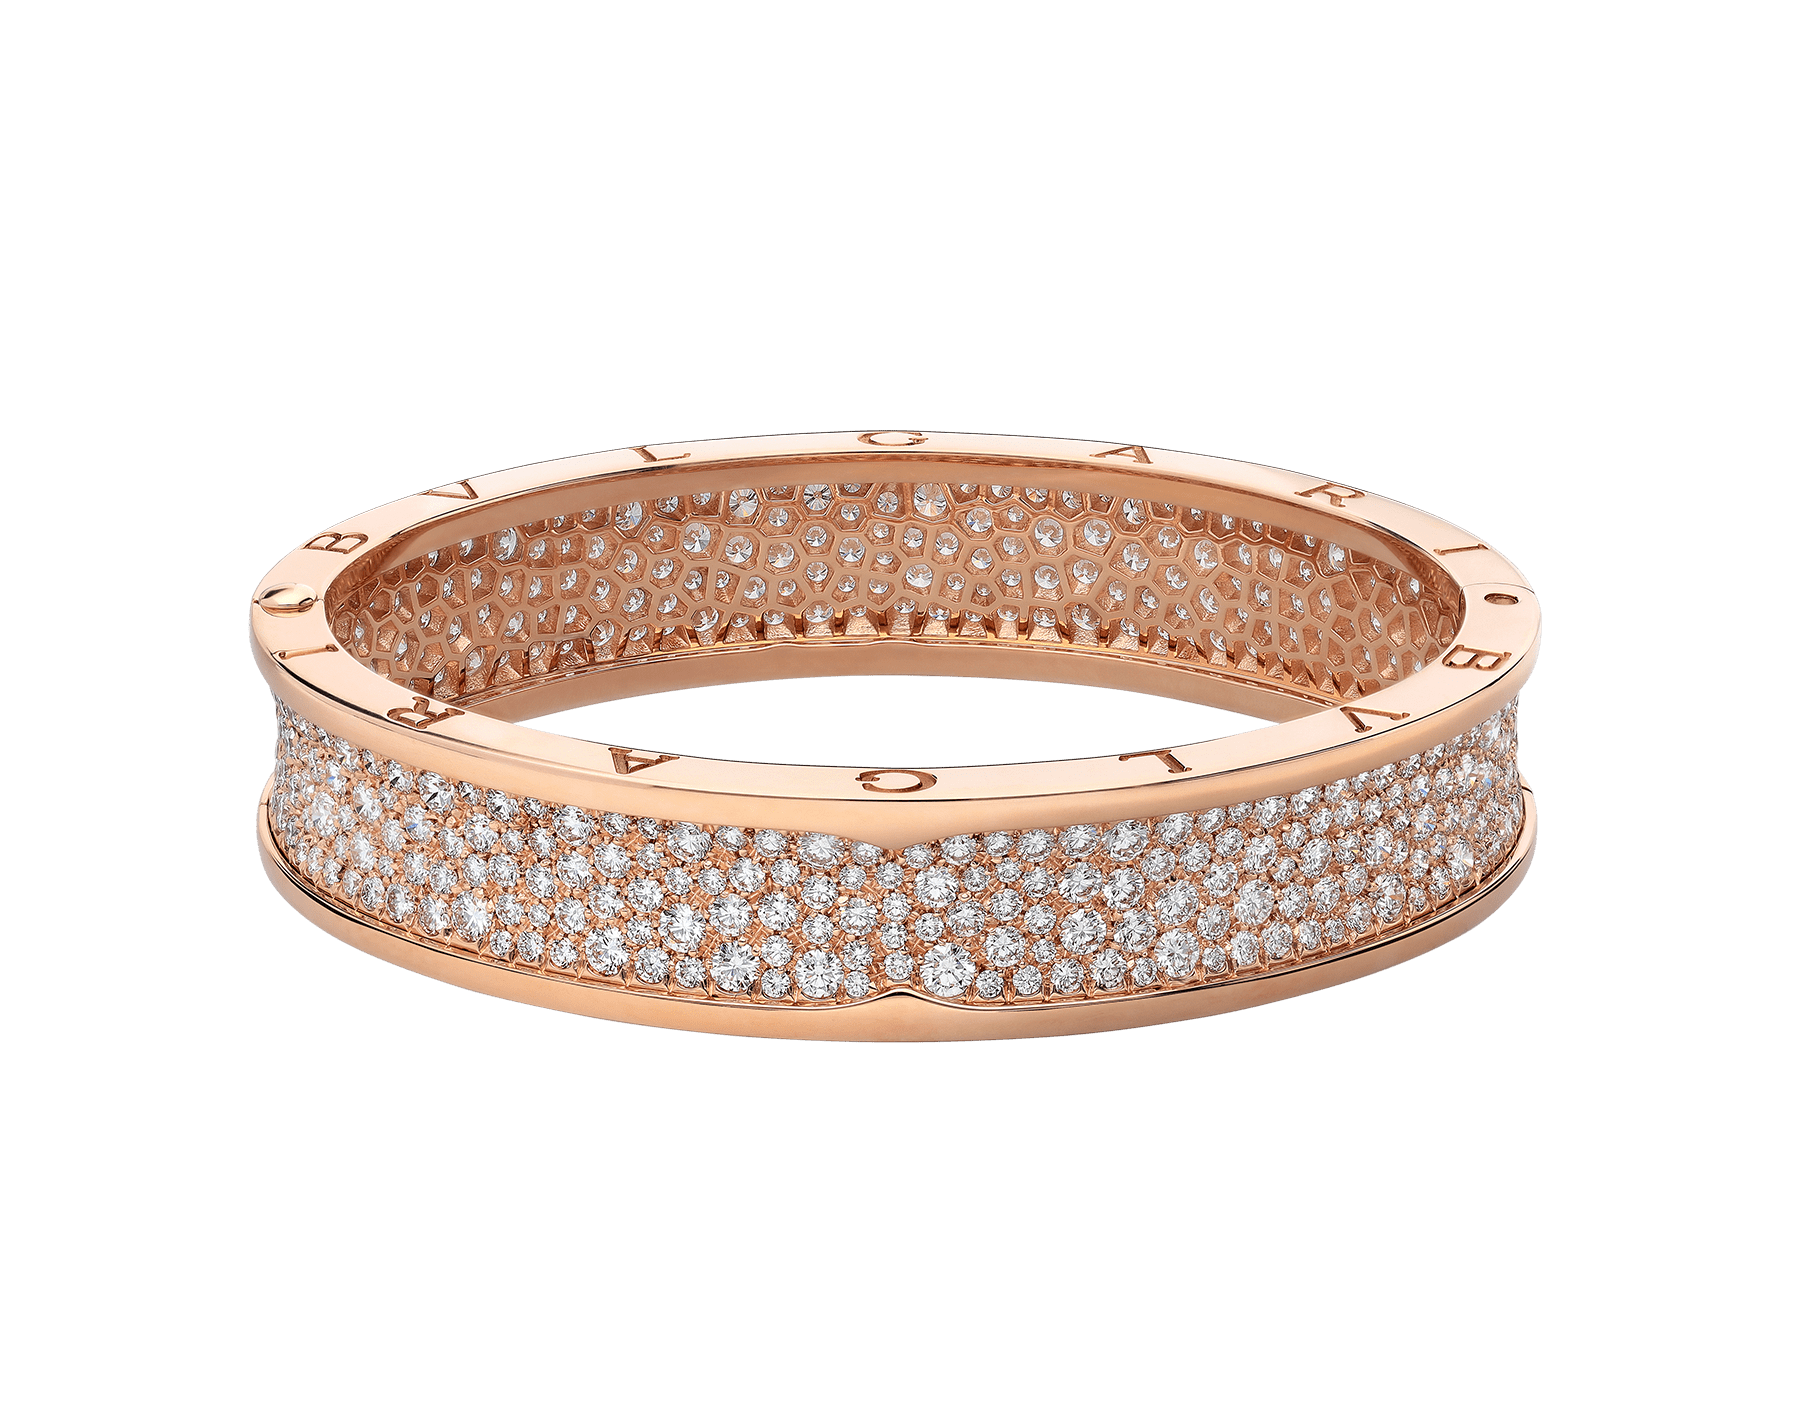 B.zero1 large bangle bracelet in 18 kt rose gold set with pavé diamonds on the spiral. BR856163 image 2